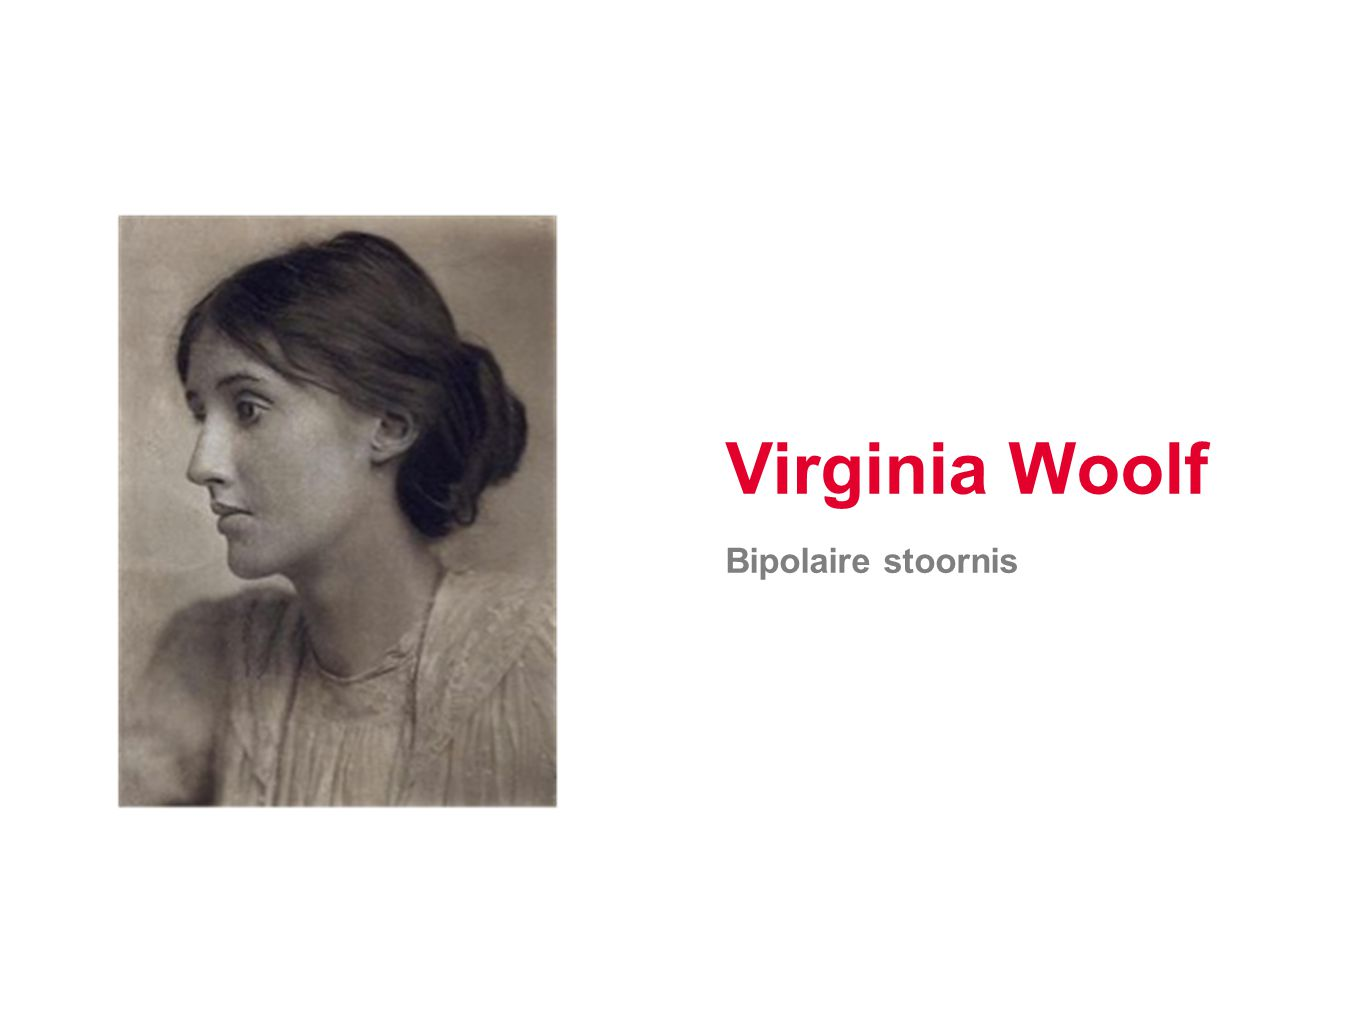 Virginia Woolf Bipolaire stoornis